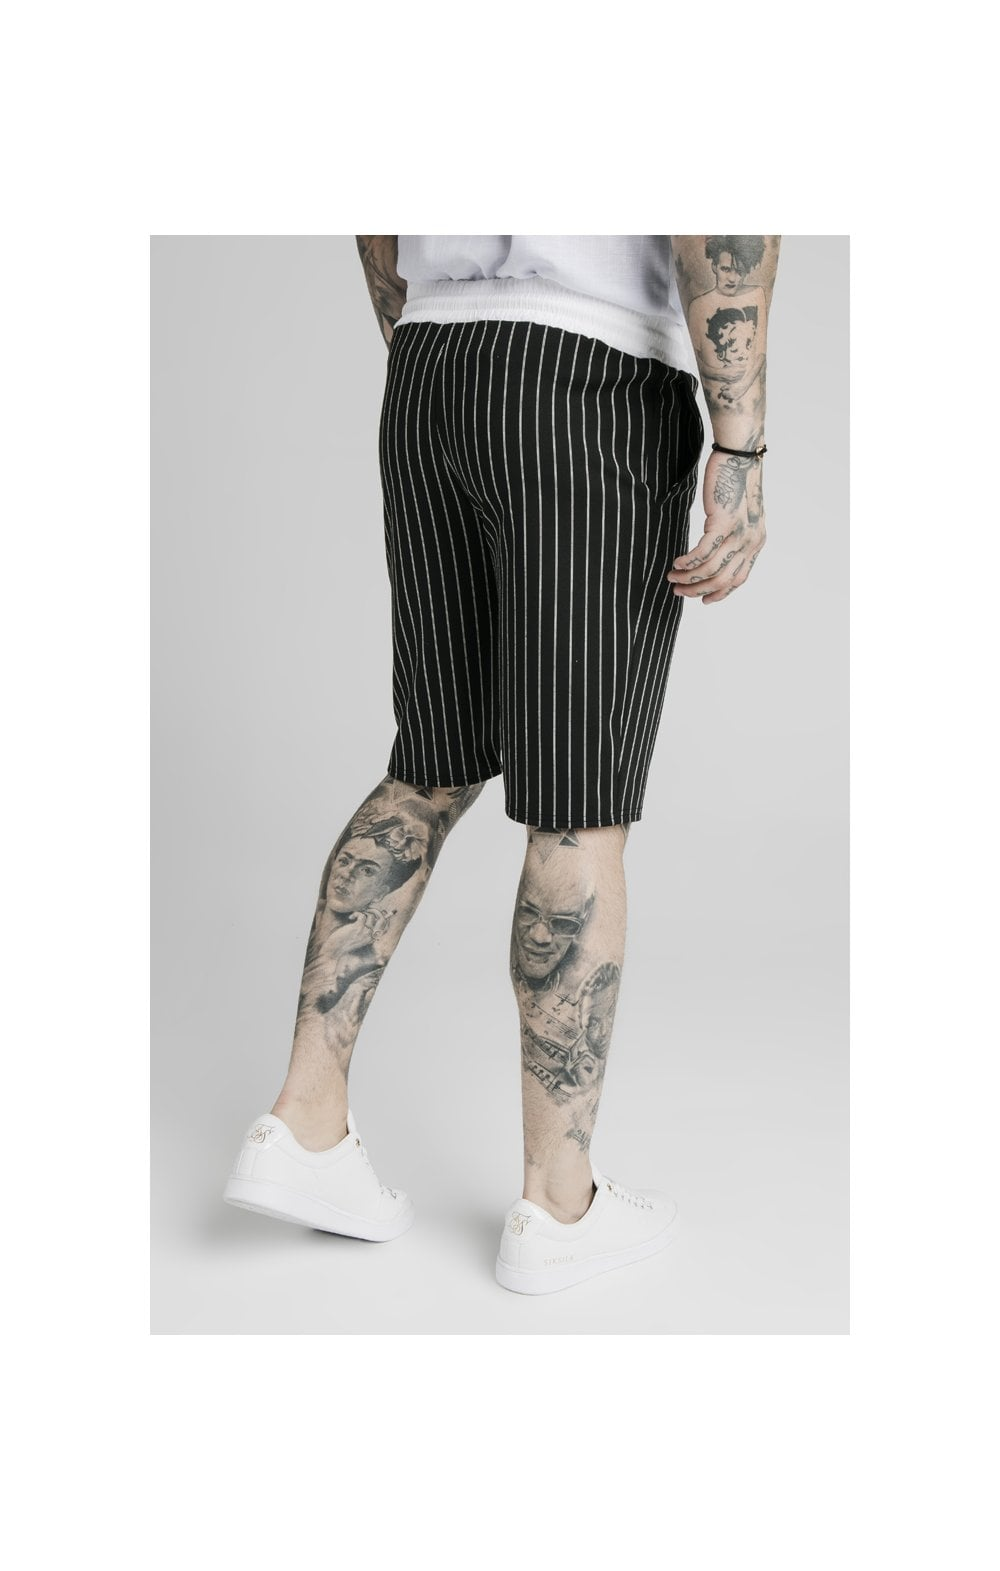 SikSilk Chino Elasticated Long Shorts - Black & White (4)